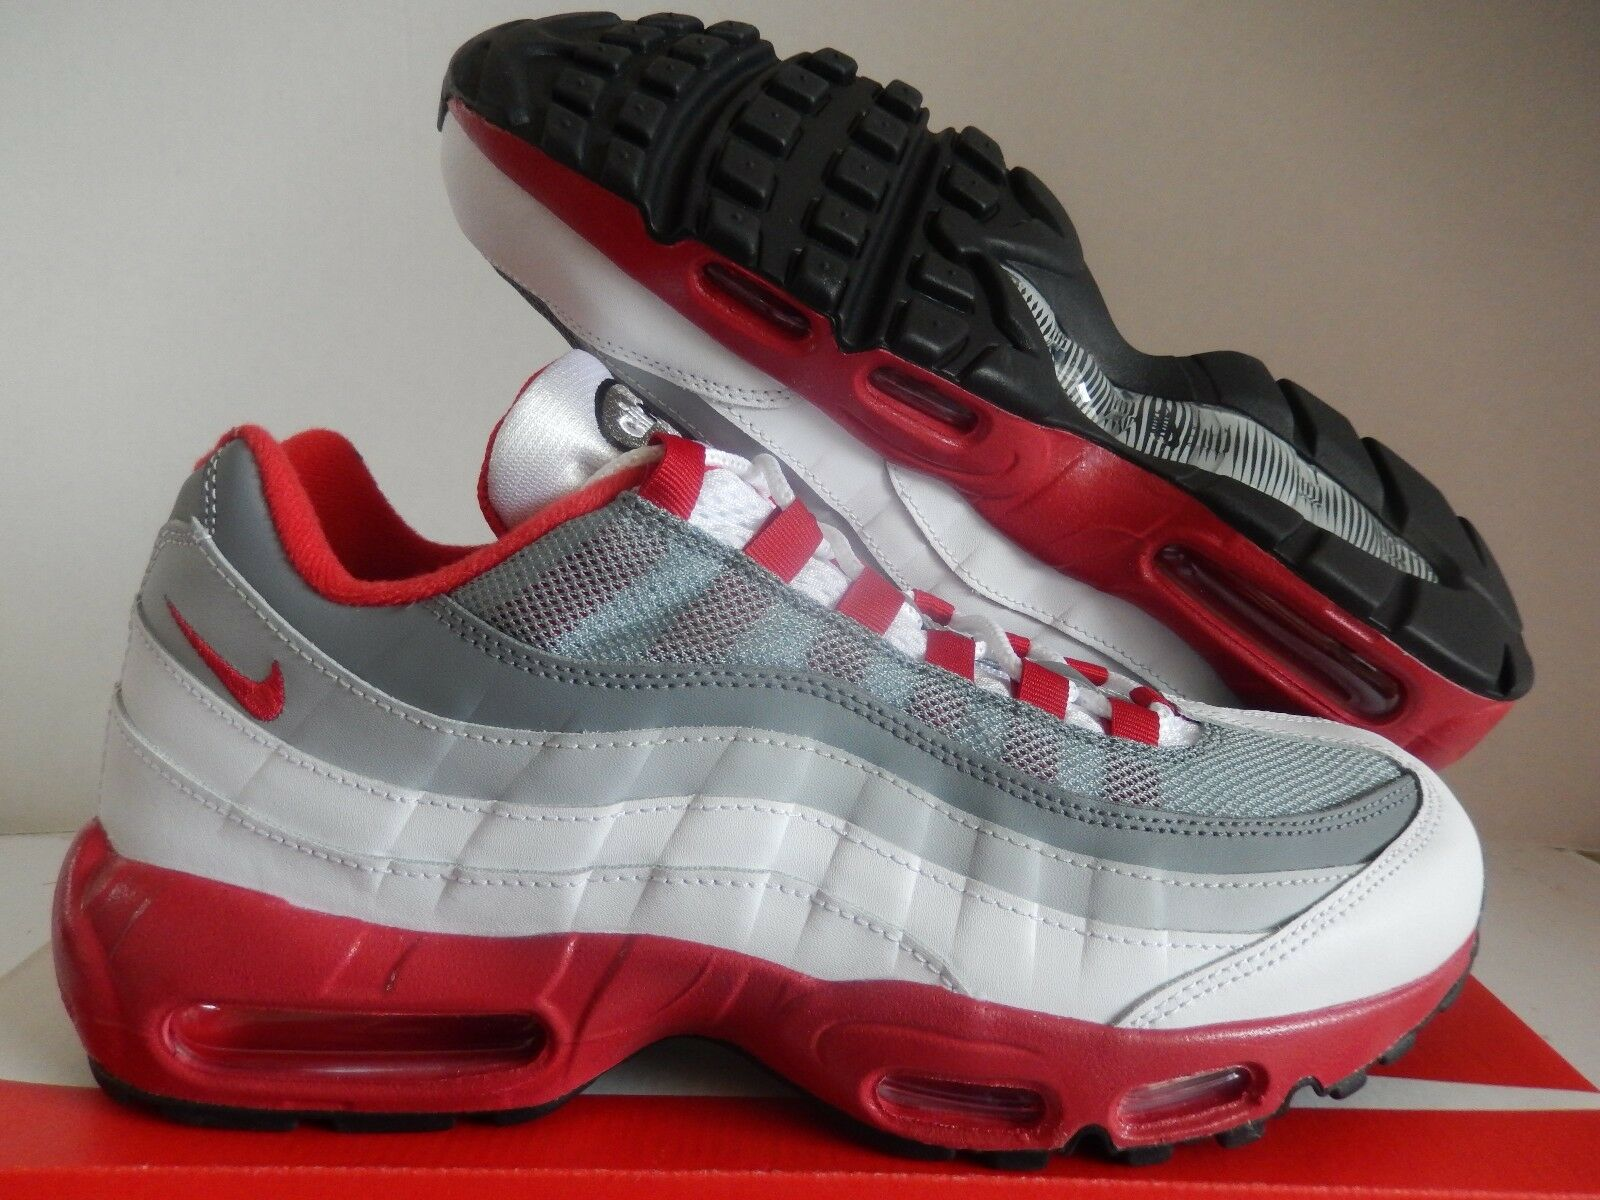 6147117f7f NIKE AIR MAX 95 ID GREY-RED-WHITE SZ 9.5 [818592-995] MENS  ntifcr6627-Athletic Shoes